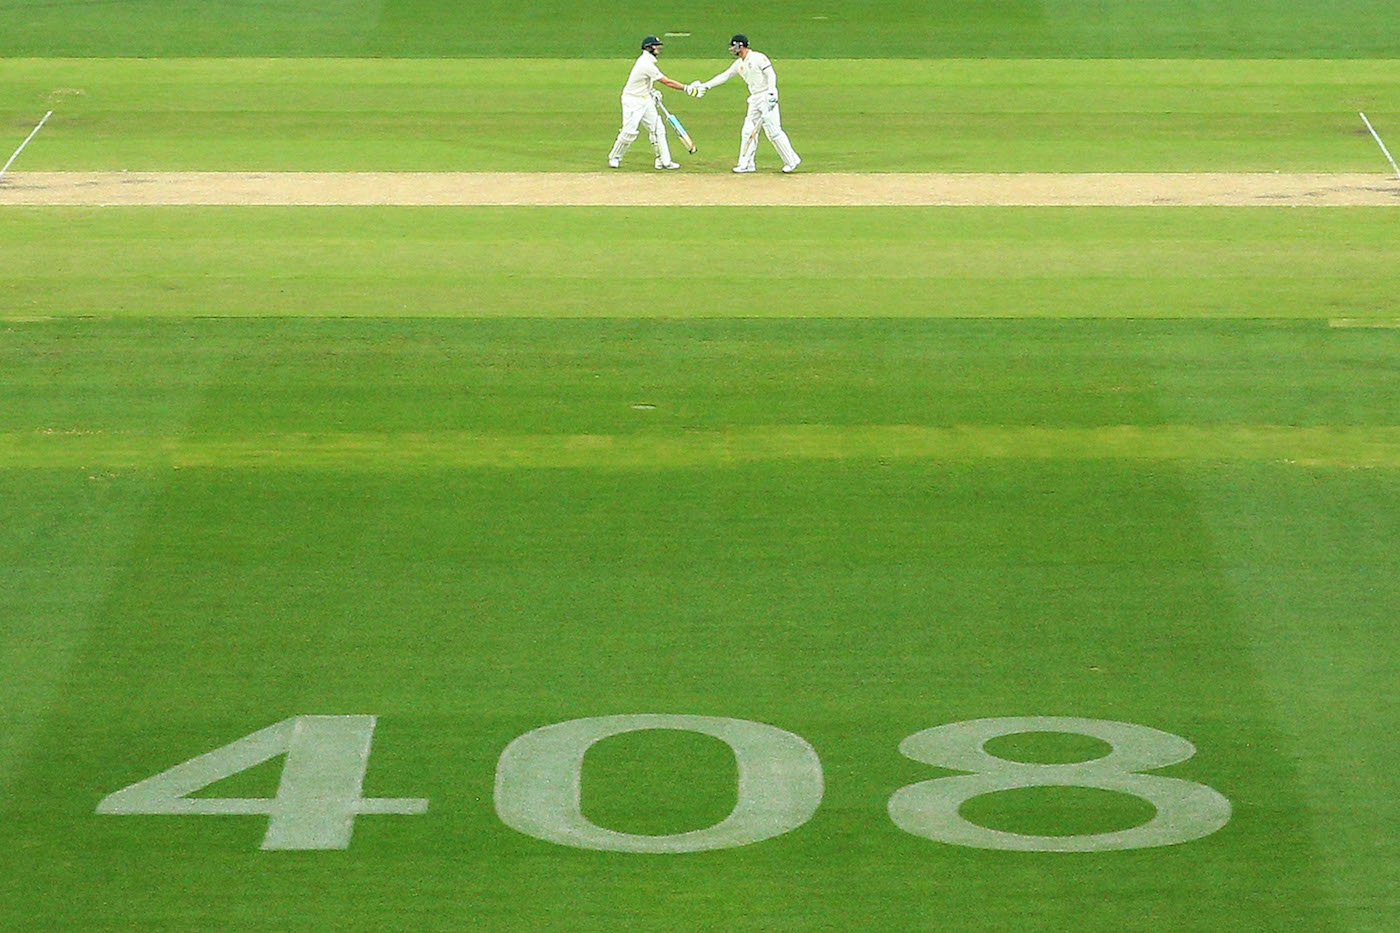 408, Hughes' Test cap number, will forever be reminder of one of cricket's biggest  tragedies